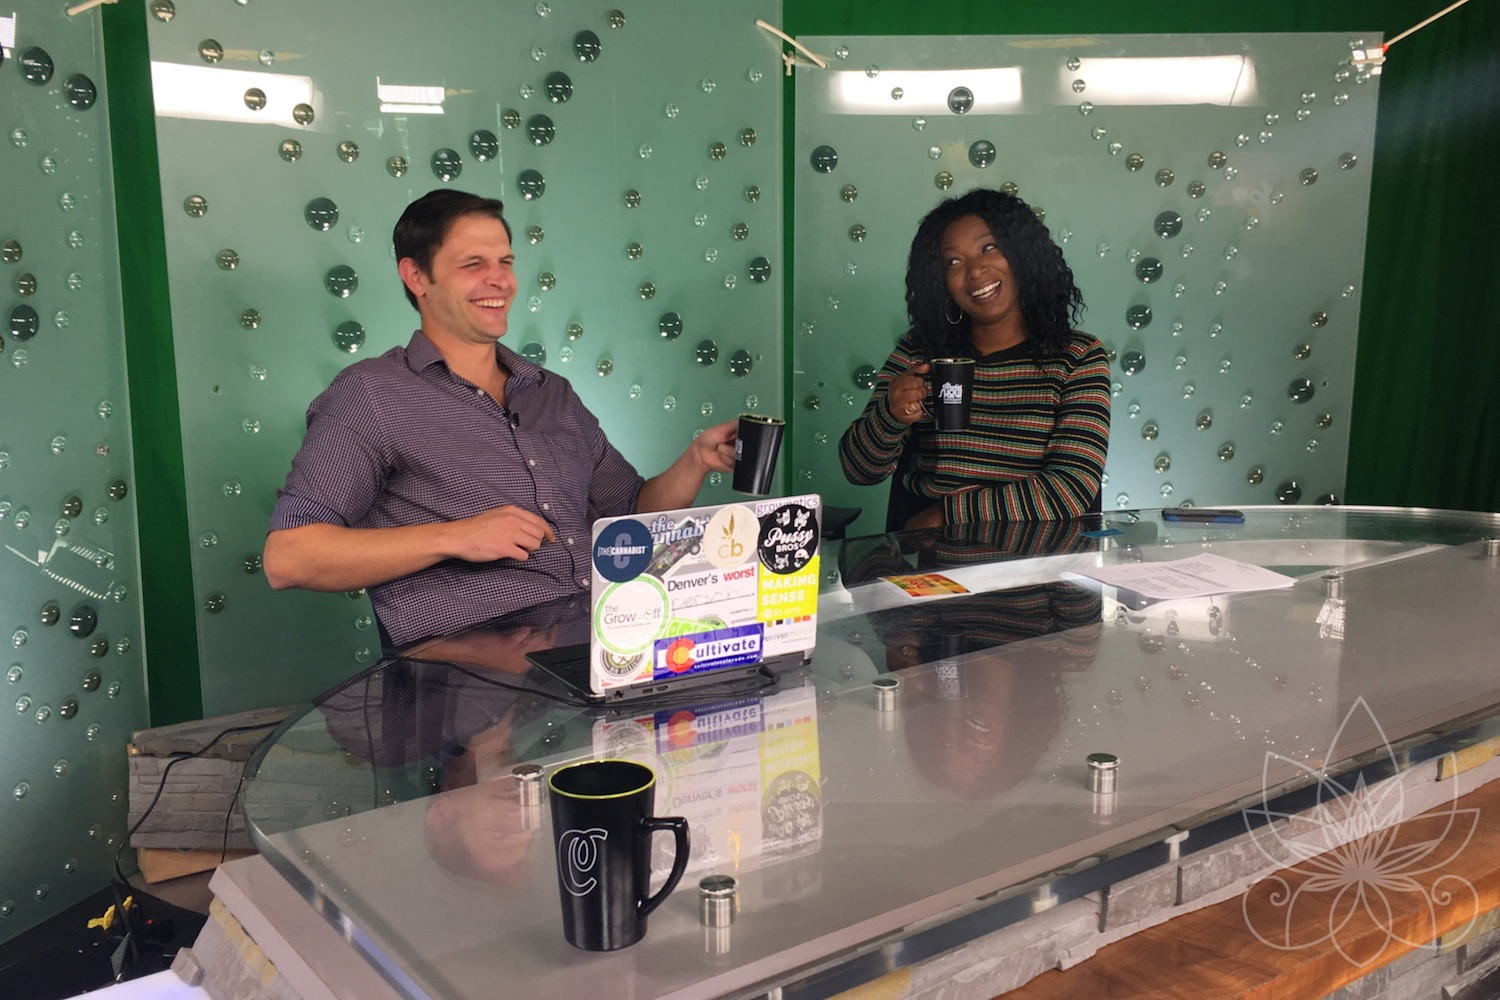 Jake Browne and Janae Burris at host desk for The Cannabist Show